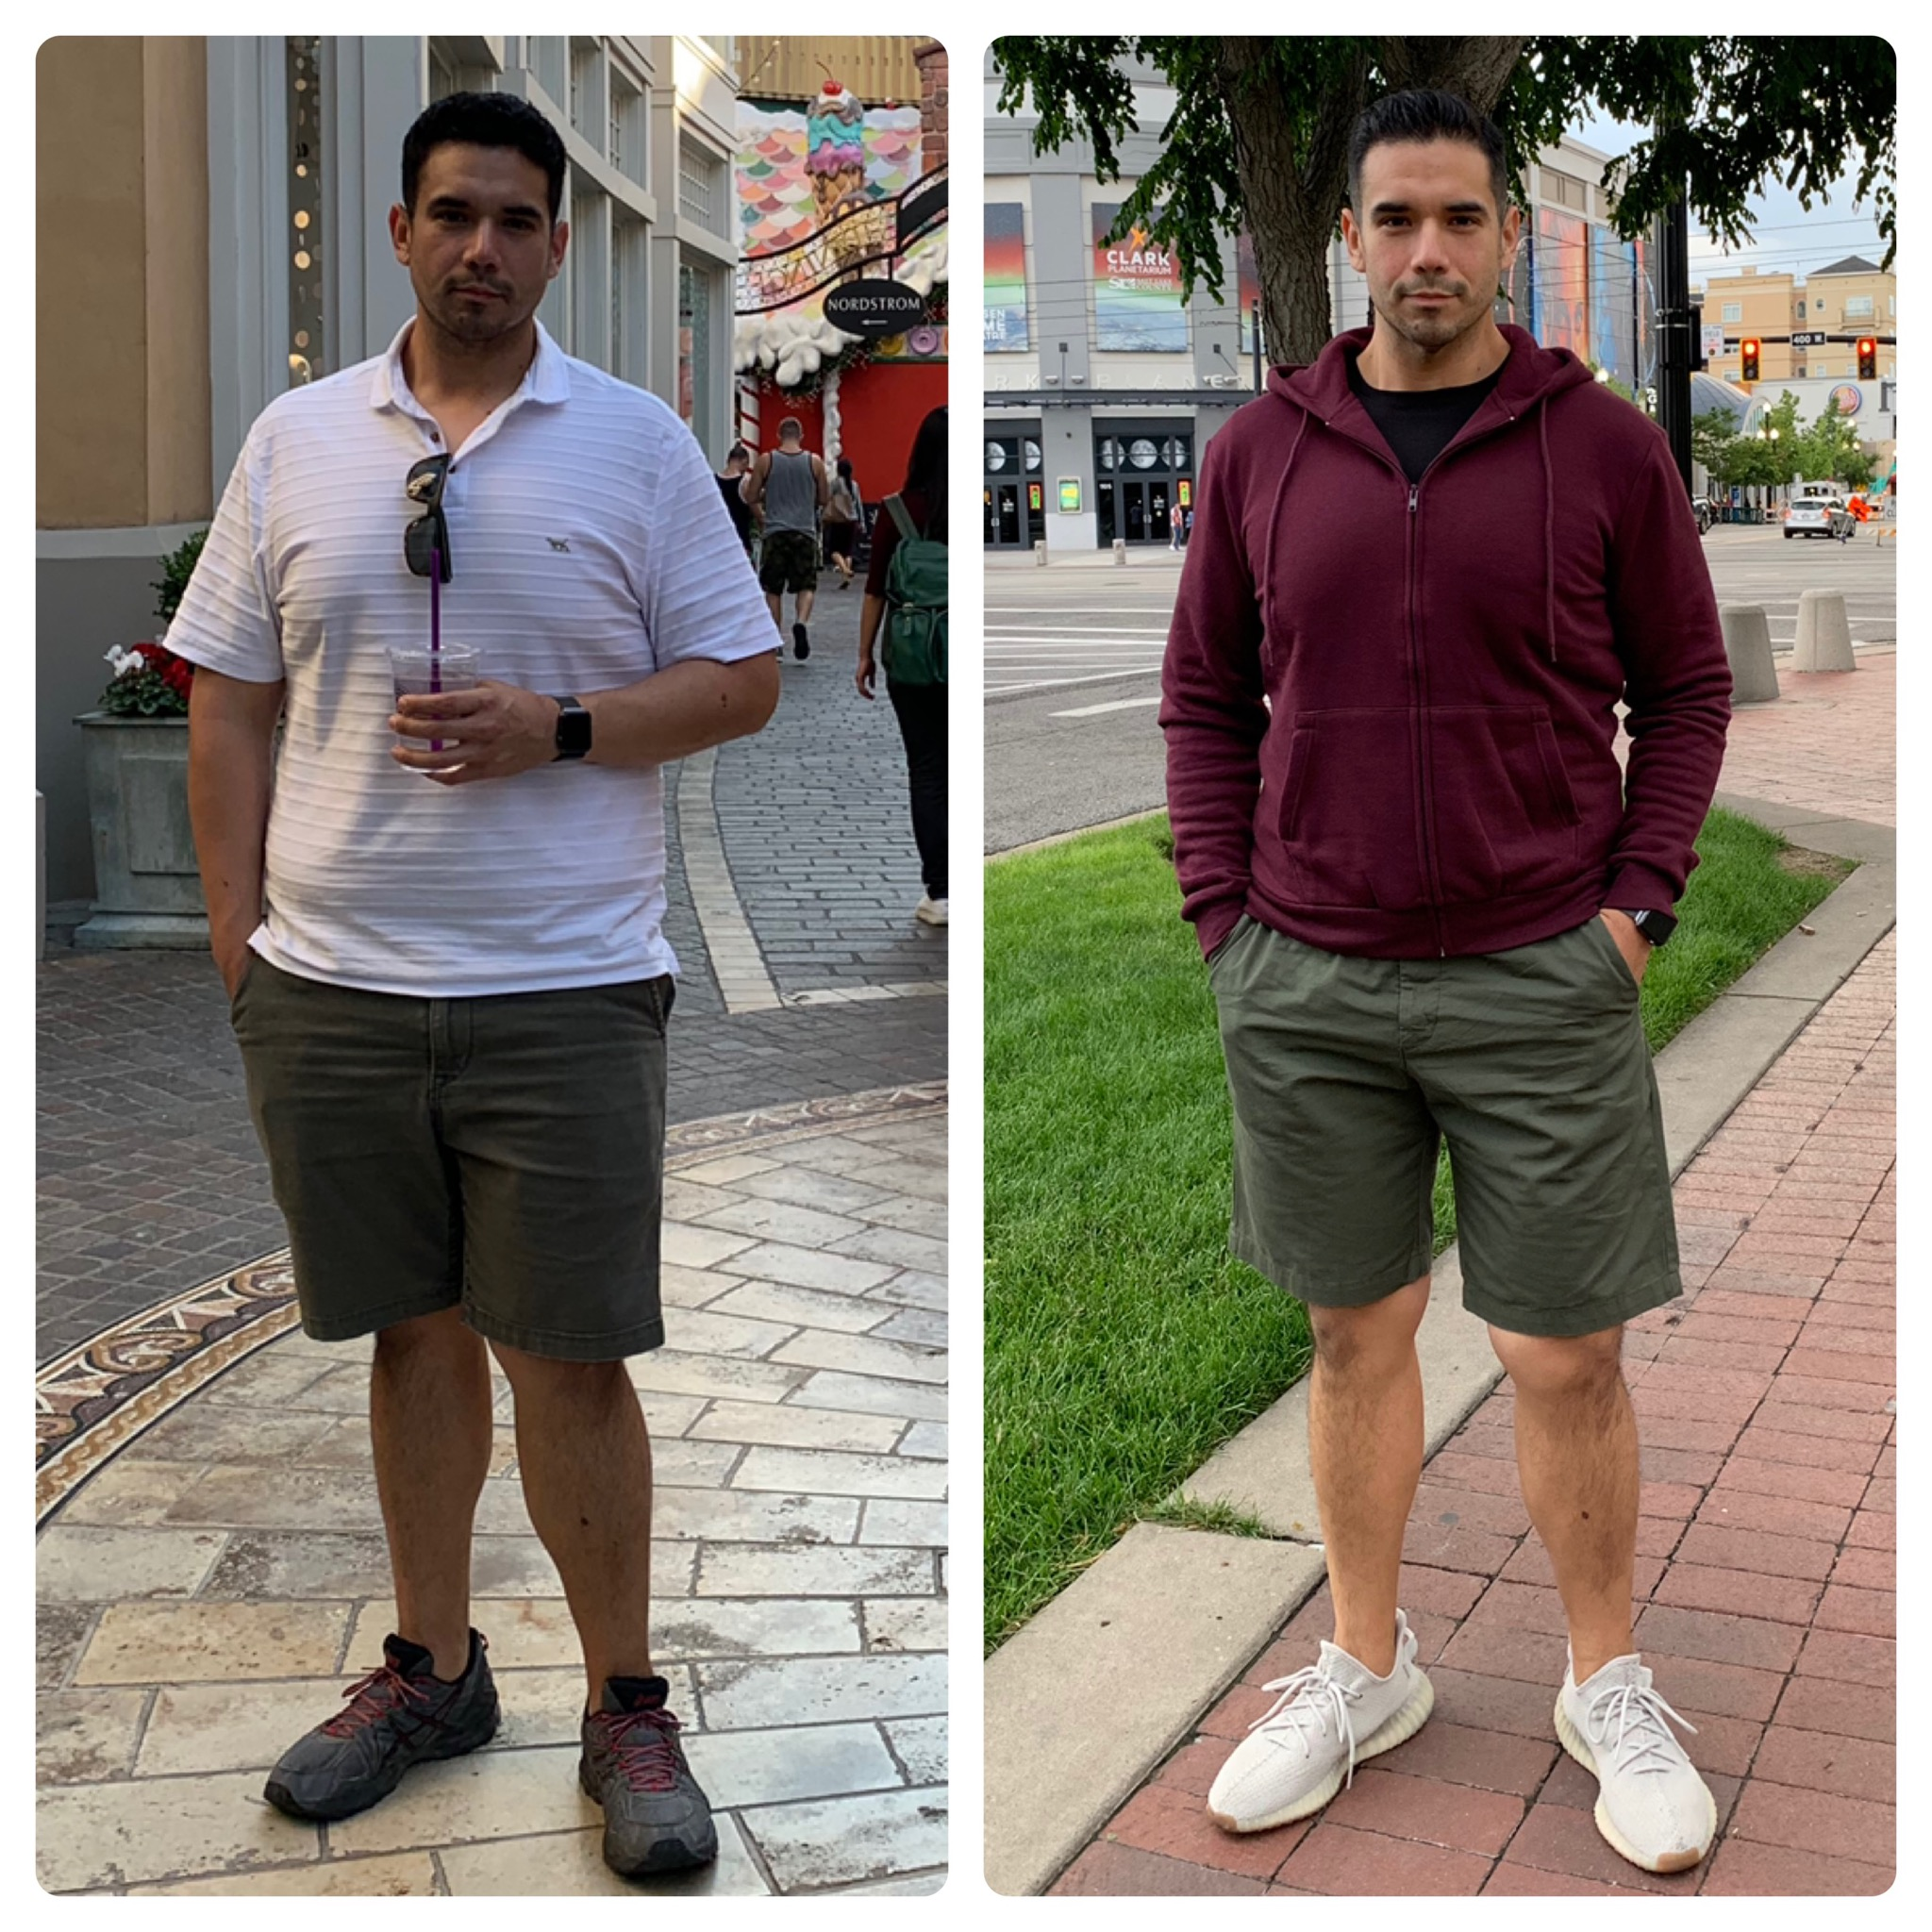 Frankie has made some dramatic changes since starting at Skyline CrossFit. He has really done a great job at following our nutrition protocol (The Skyline Way) and being consistent in the gym.  Frankie also spends a lot of time going out and trying new activities and disciplines.